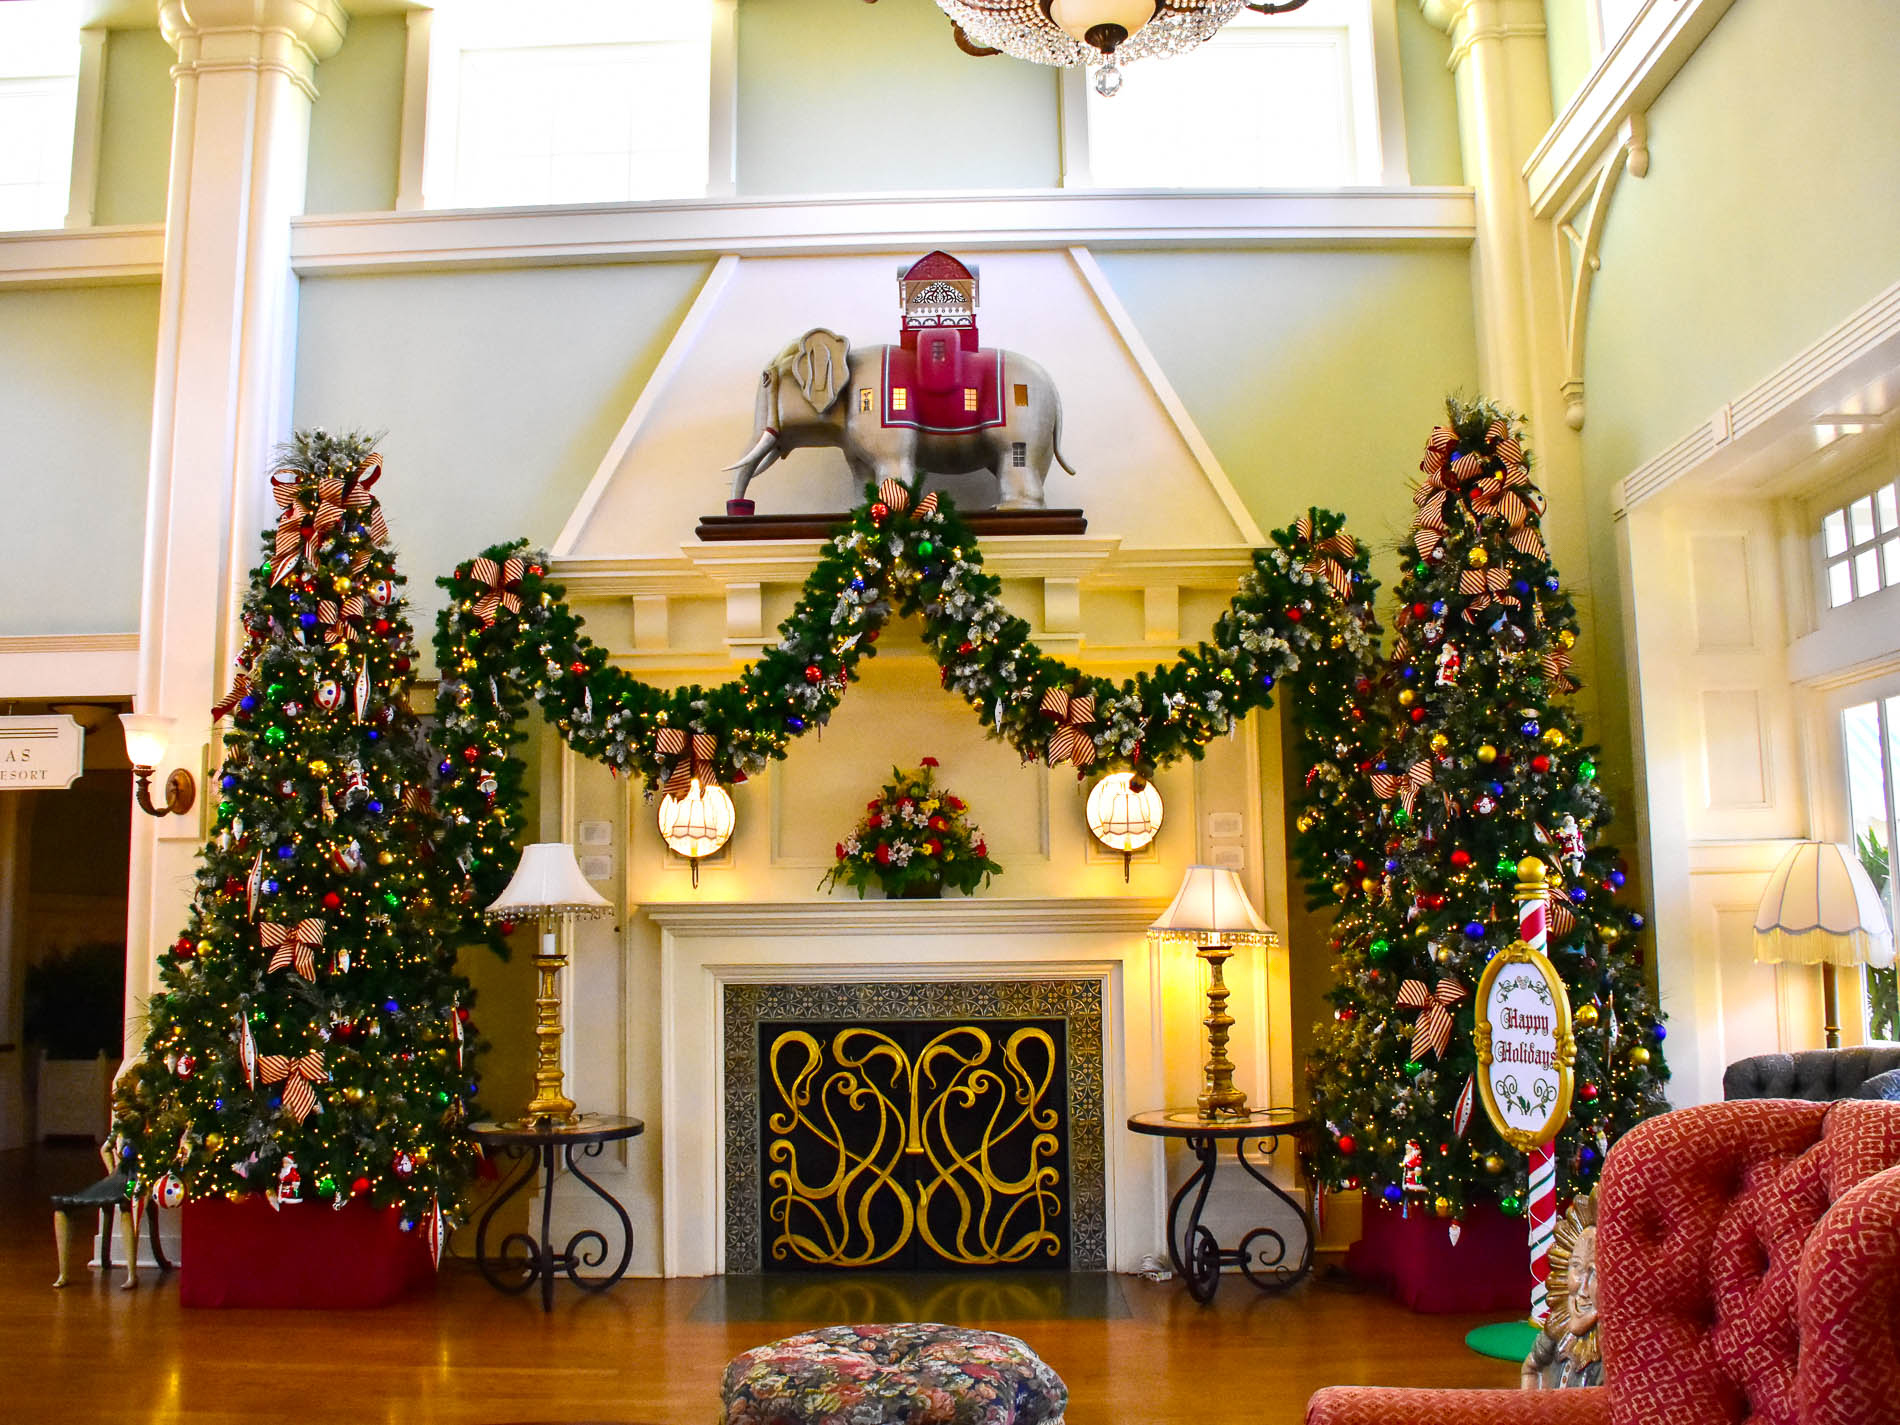 the fireplace mantel at disneys boardwalk inn is fully decorated for christmas photo by bonnie fink - When Is Disney Decorated For Christmas